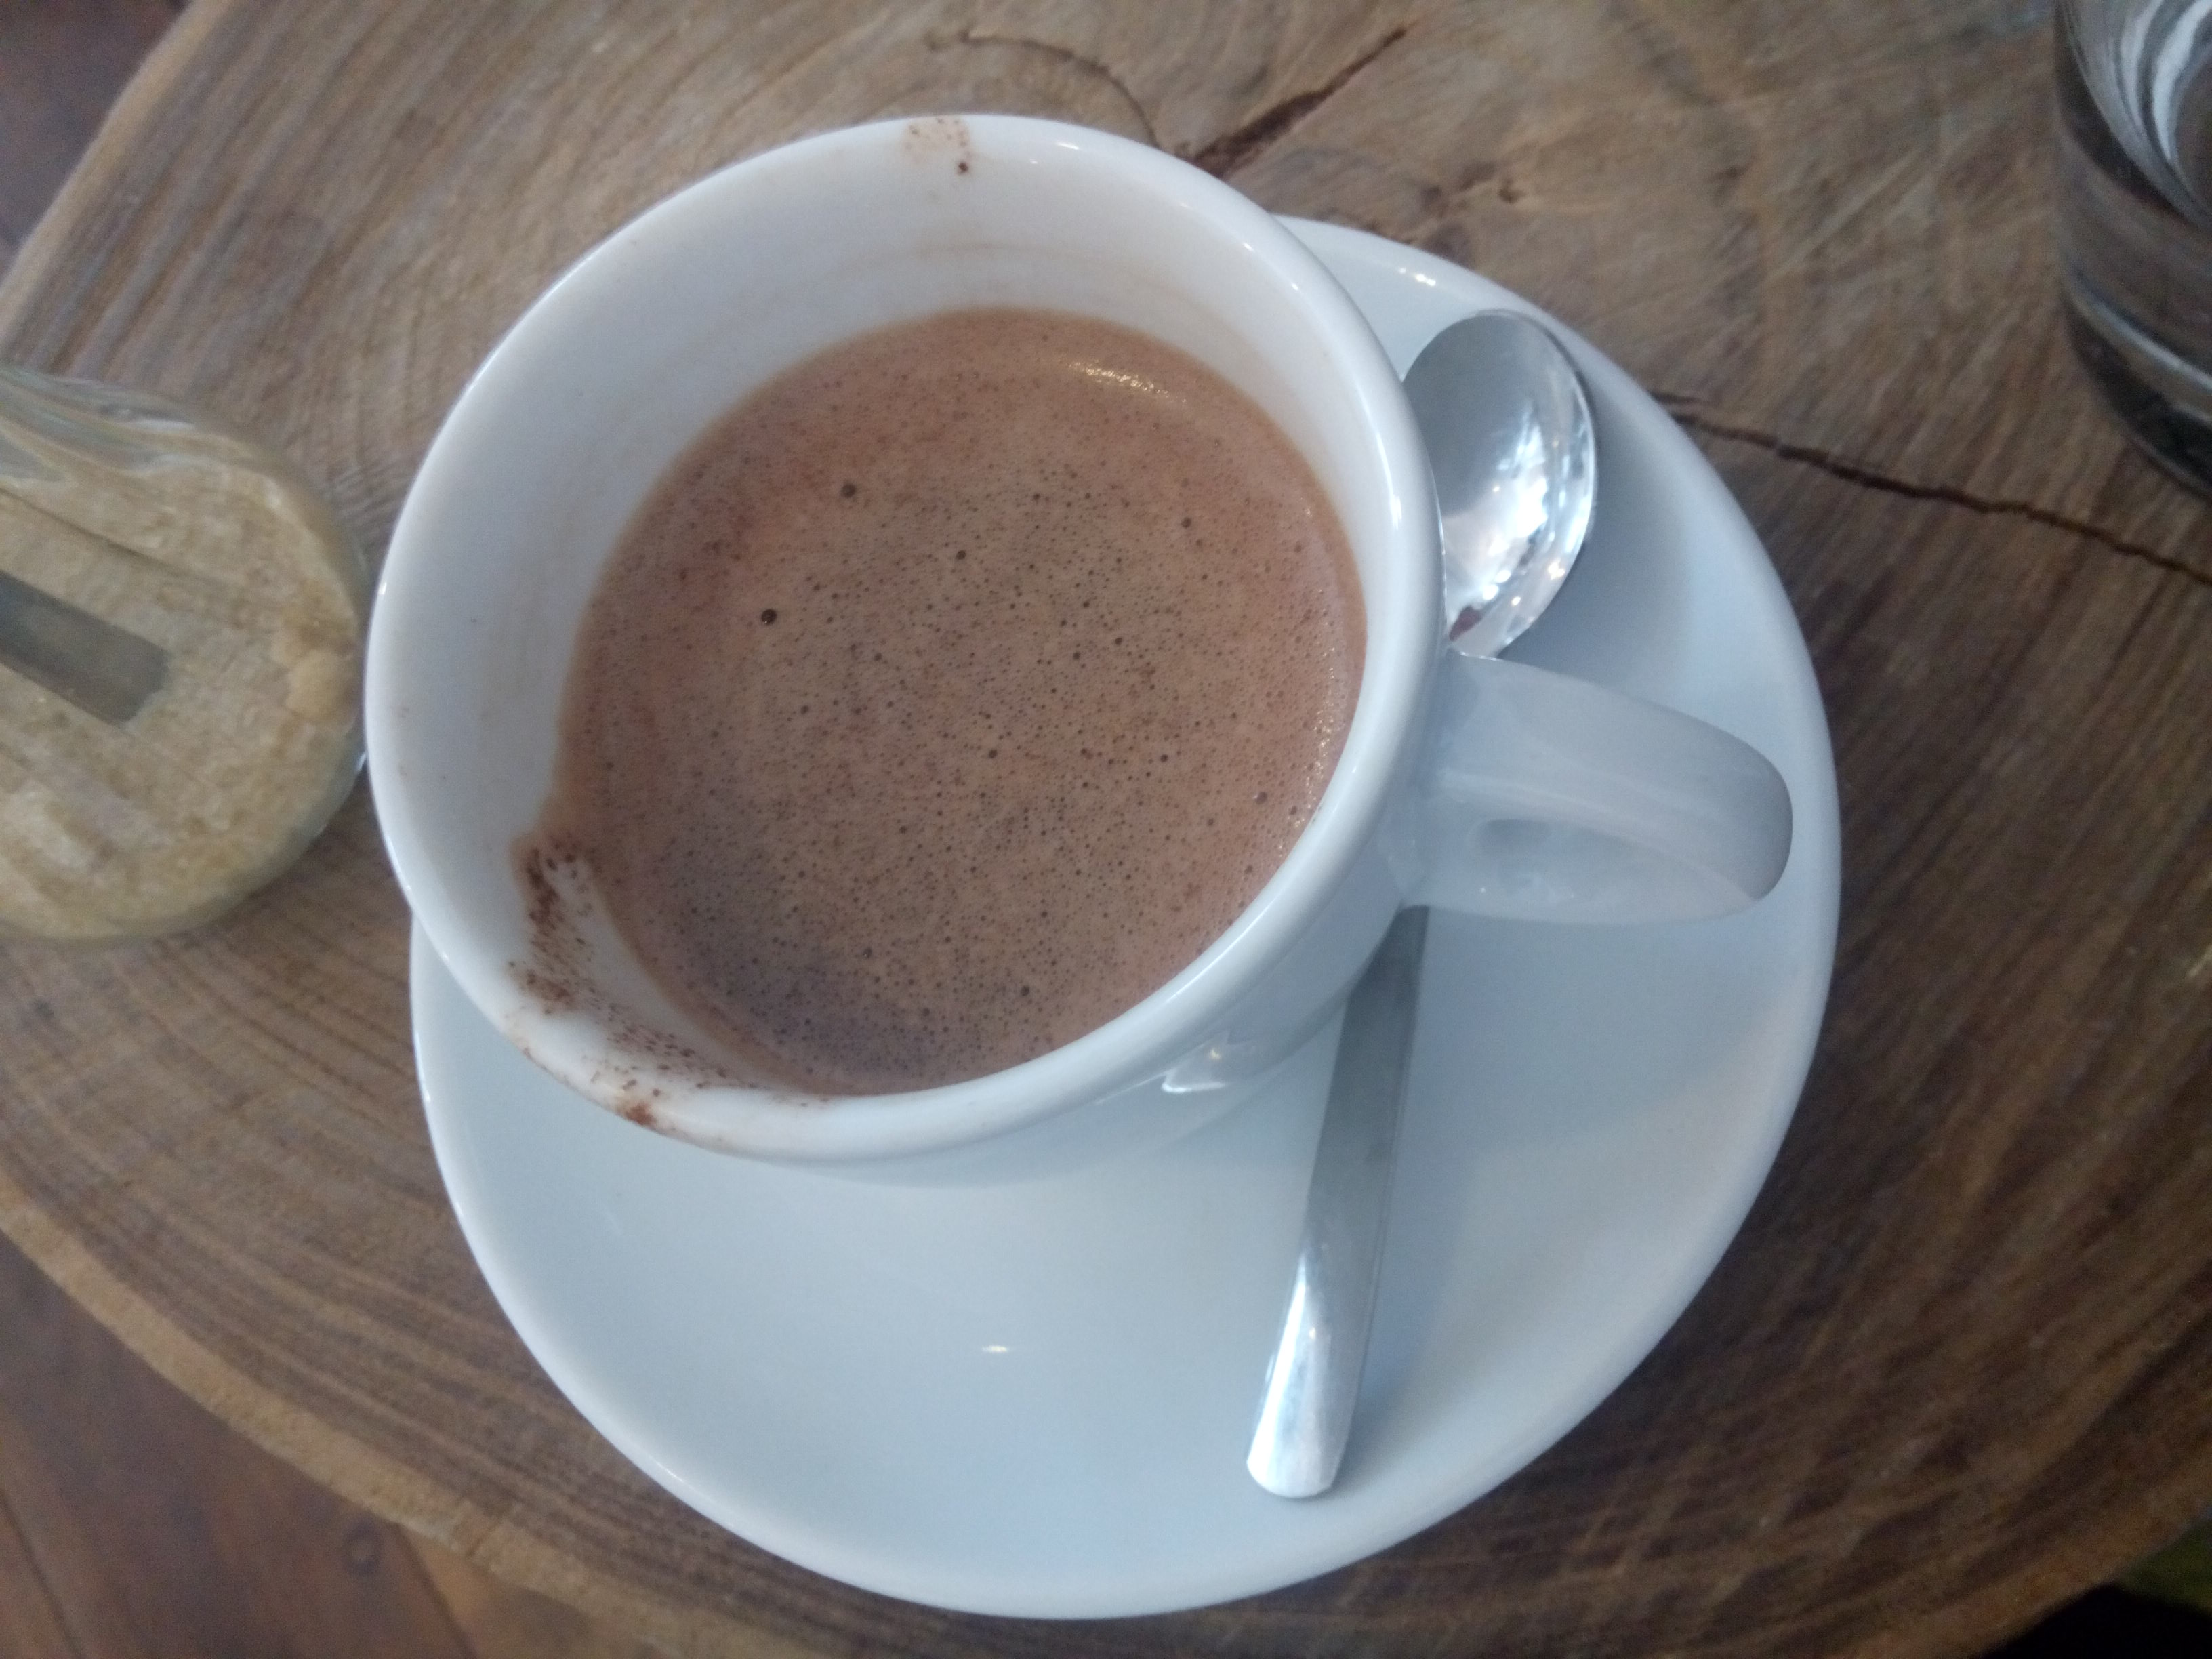 A wooden table with a white cup of hot chocolate from above